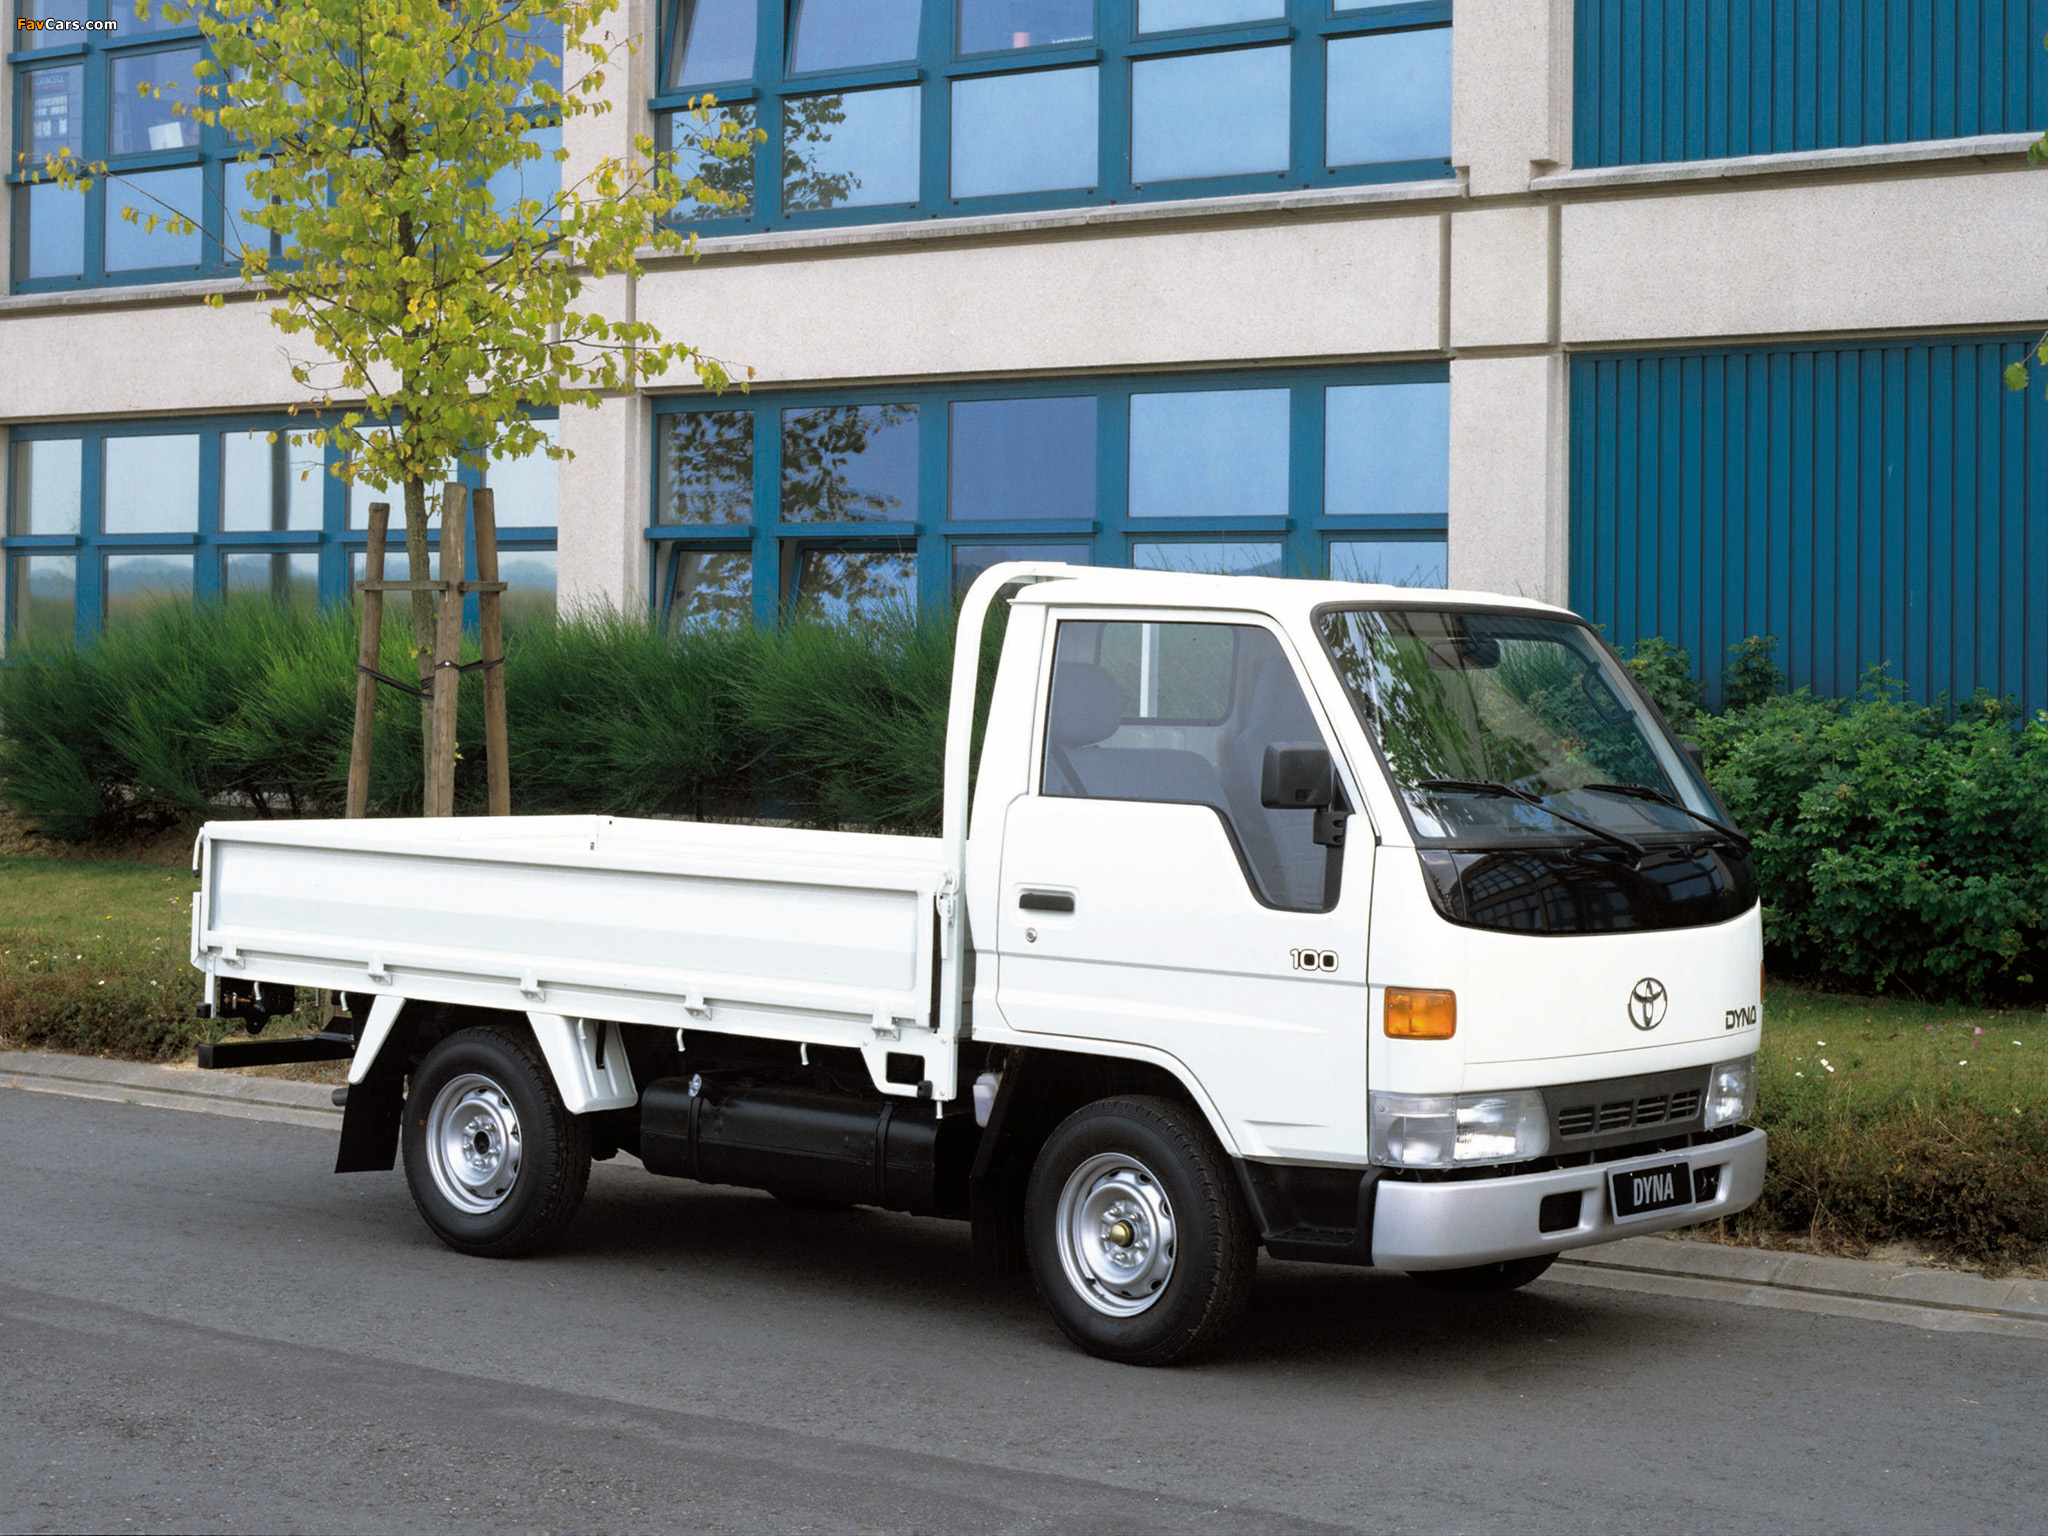 1024x768 Car Wallpapers Pictures Of Toyota Dyna 100 1995 99 2048x1536